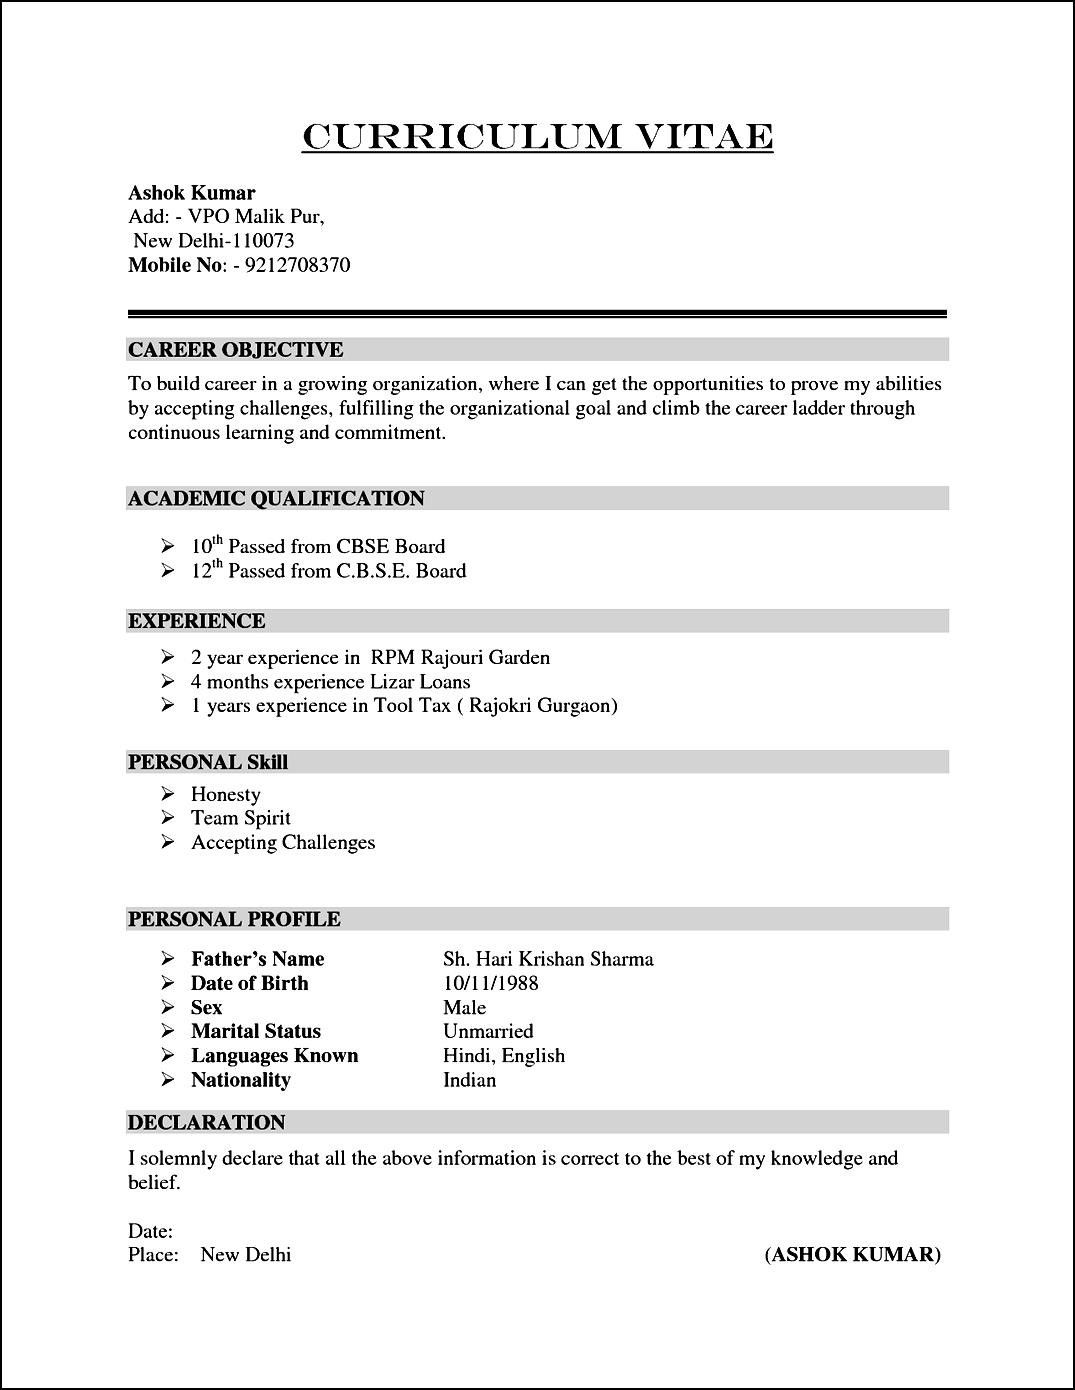 Superior Explore Cv Resume Sample, Resume Format, And More!